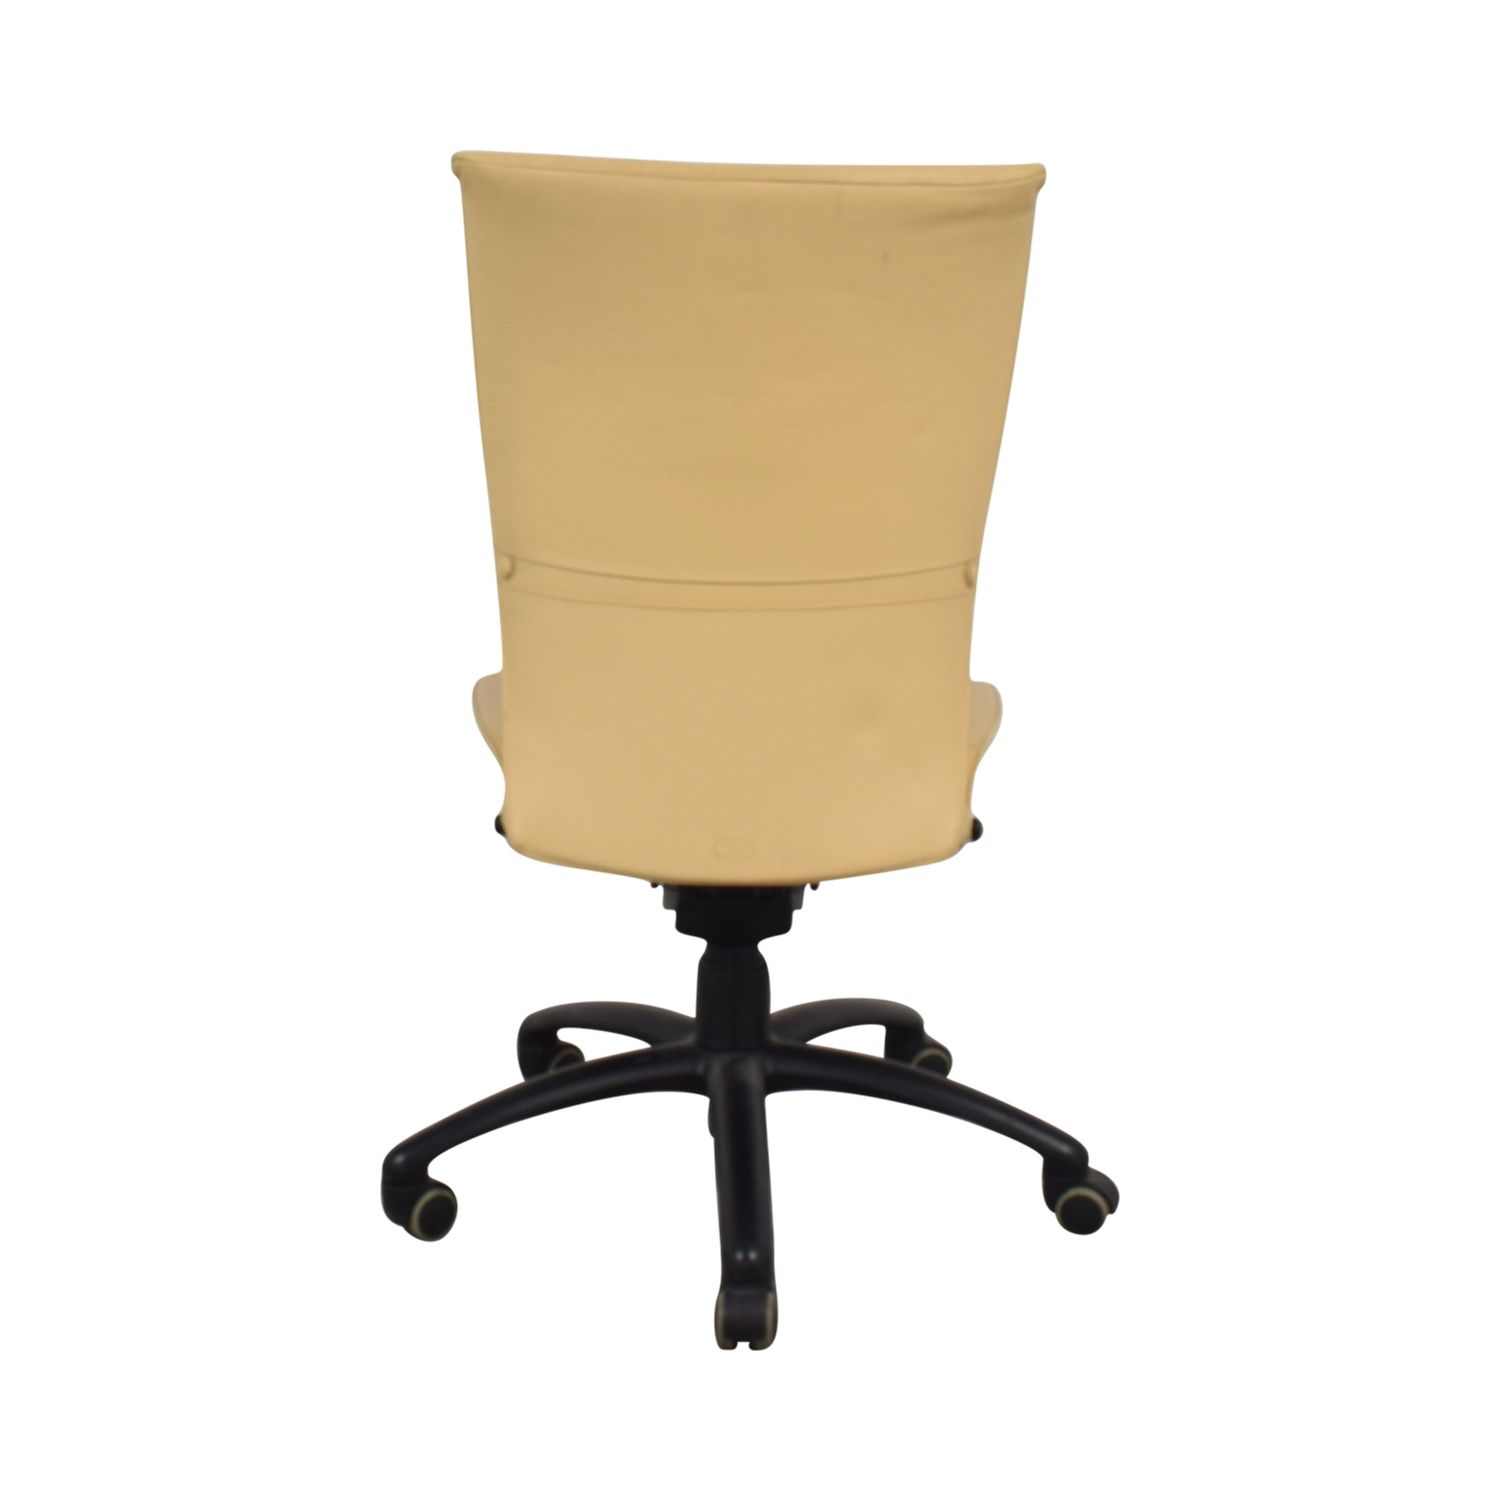 Poltrona Frau Poltrona Frau Office Chair second hand